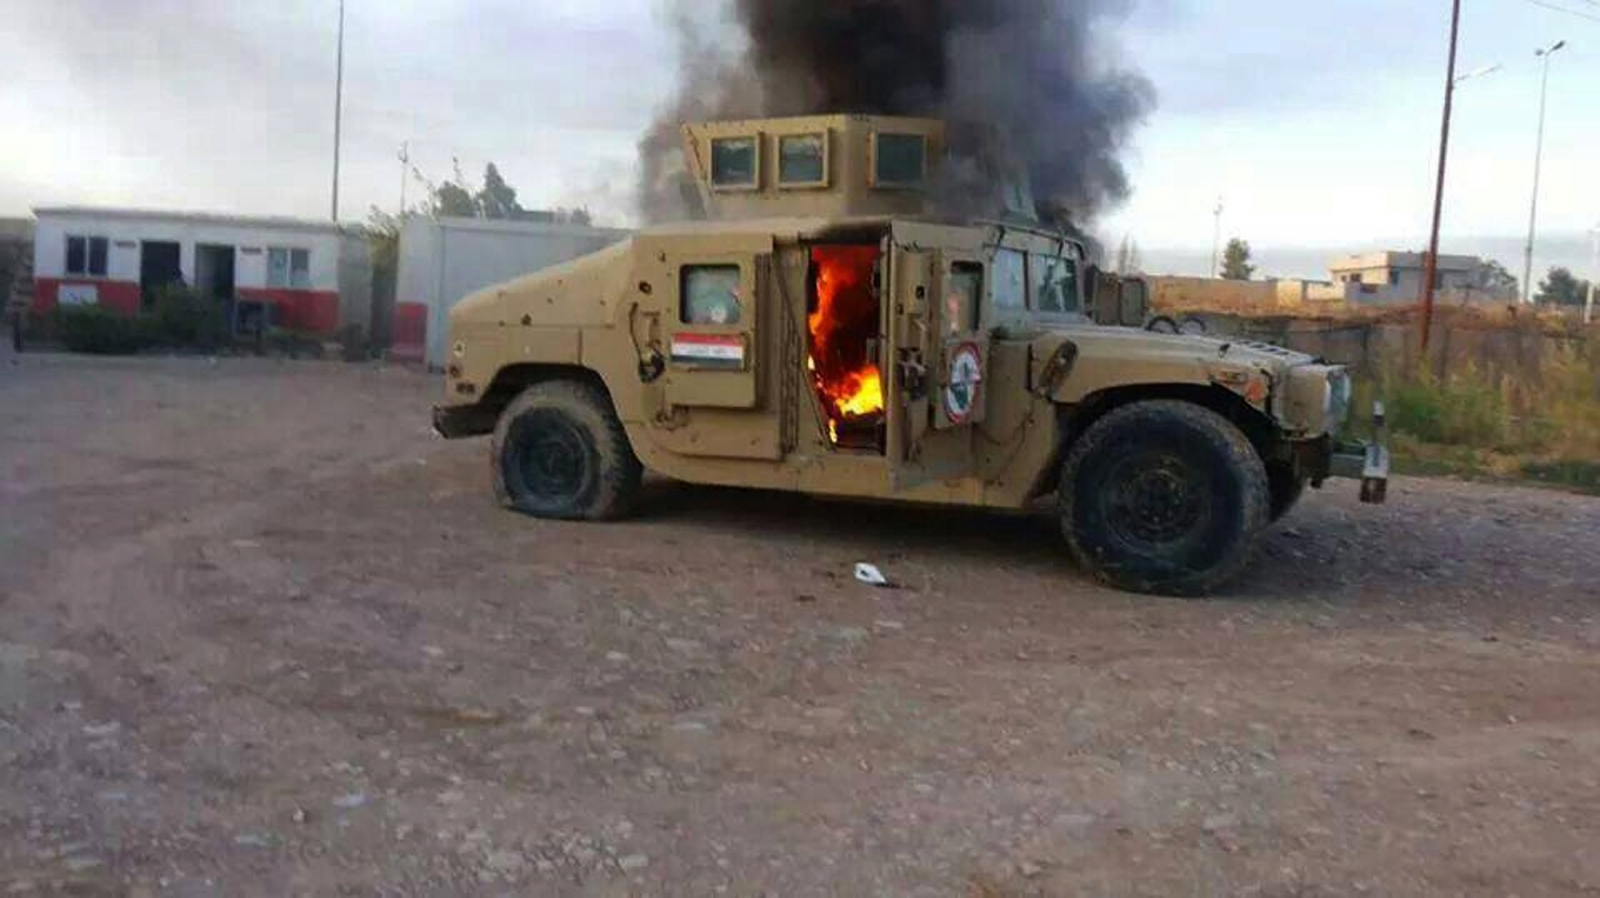 Military vehicle in Mosul in flames